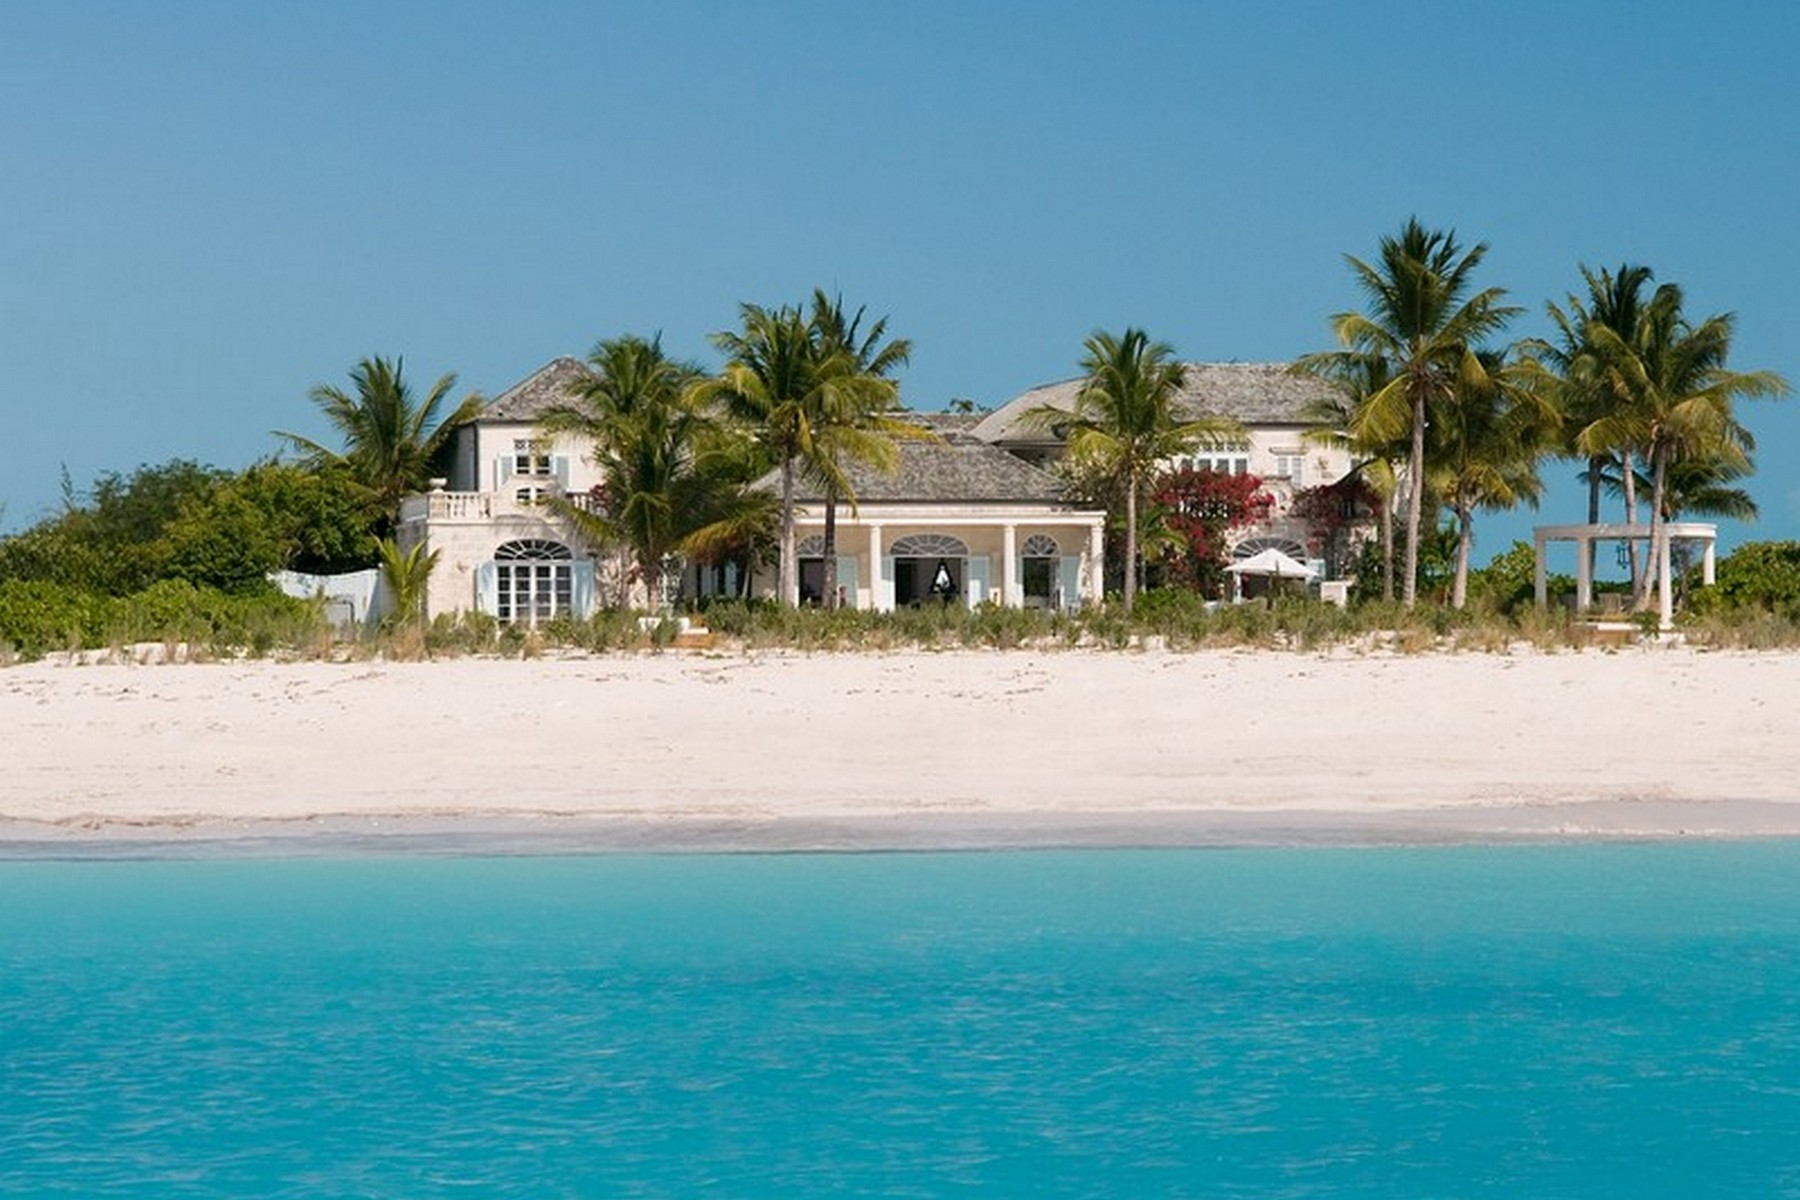 Single Family Home for Rent at Coral House Vacation Rental Beachfront Grace Bay, Providenciales TCI BWI Turks And Caicos Islands